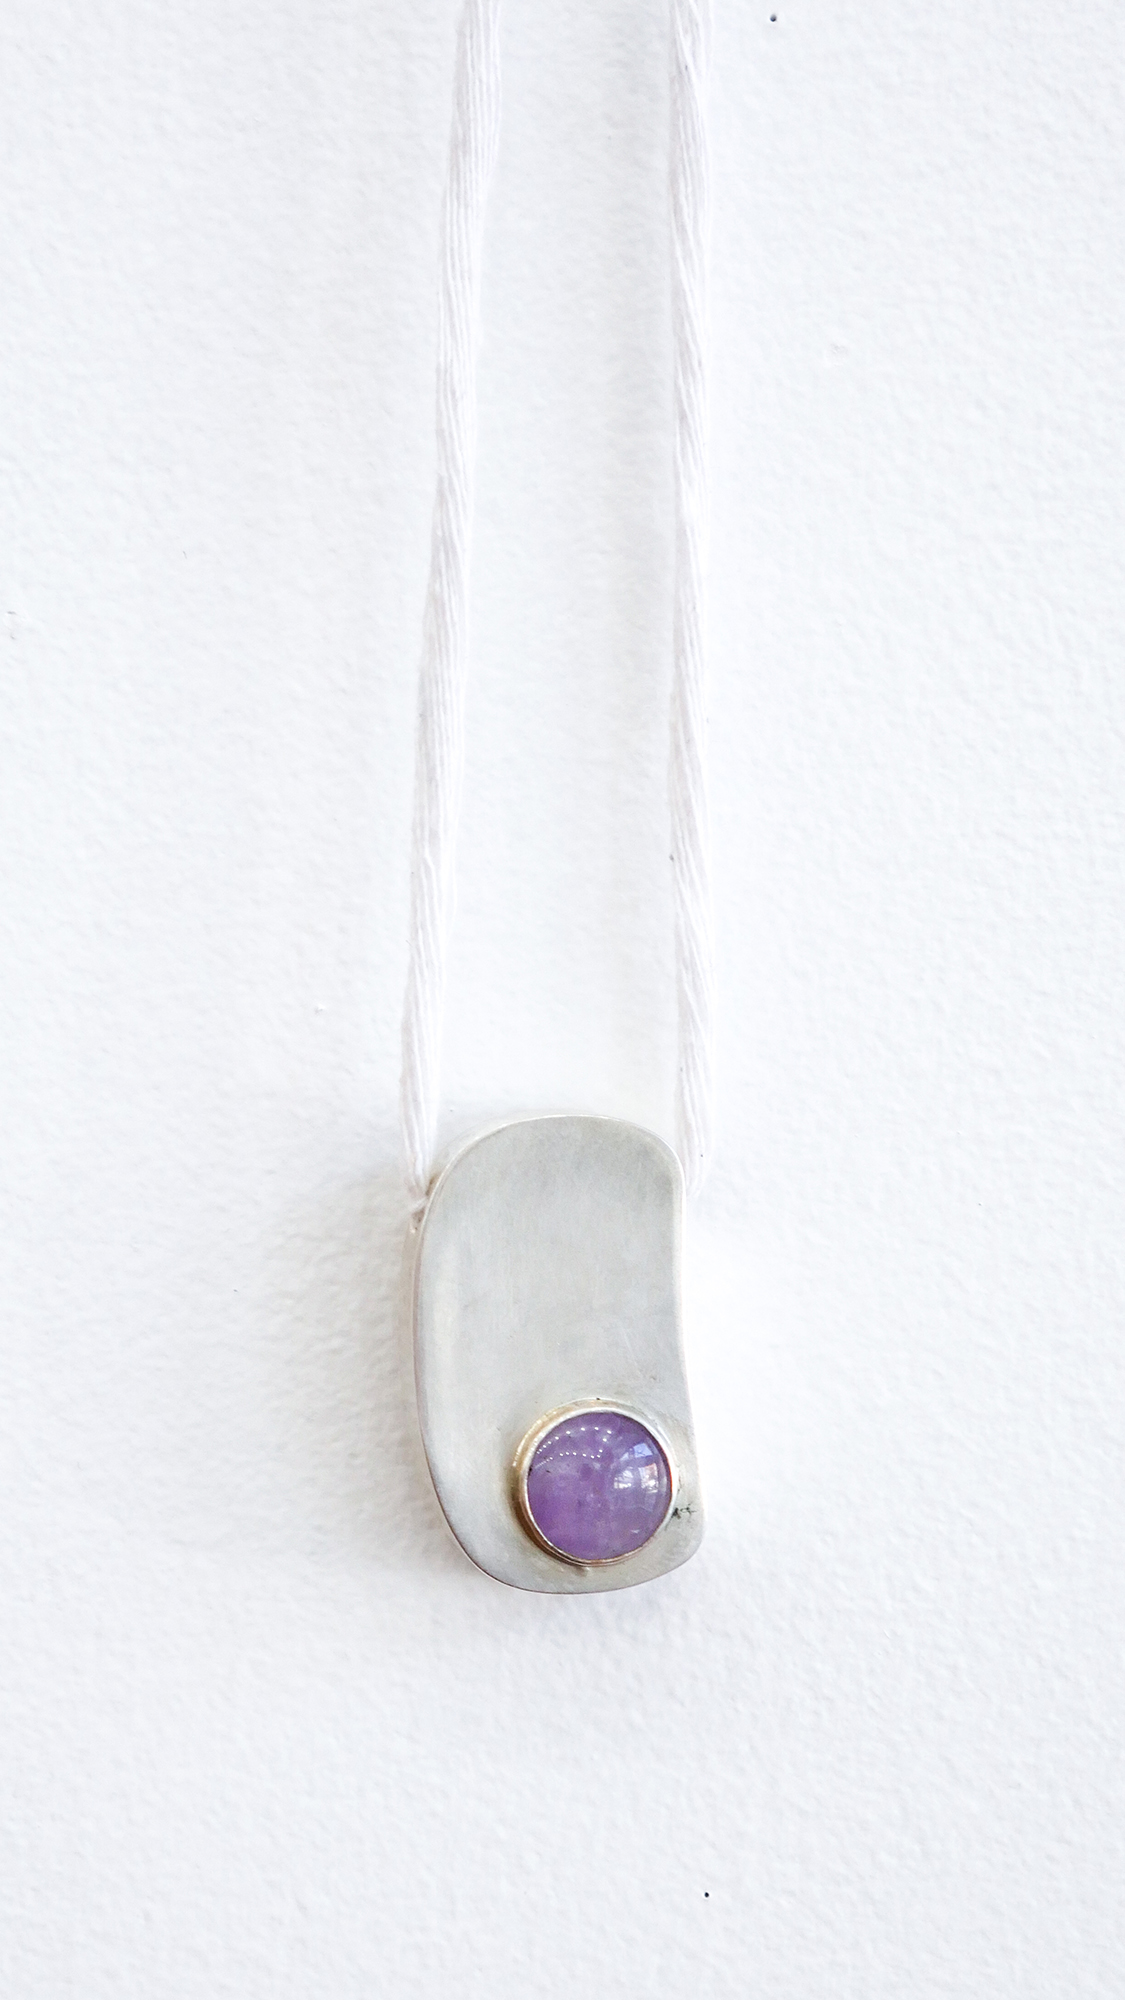 Pendant with Lavender Jade, 2019